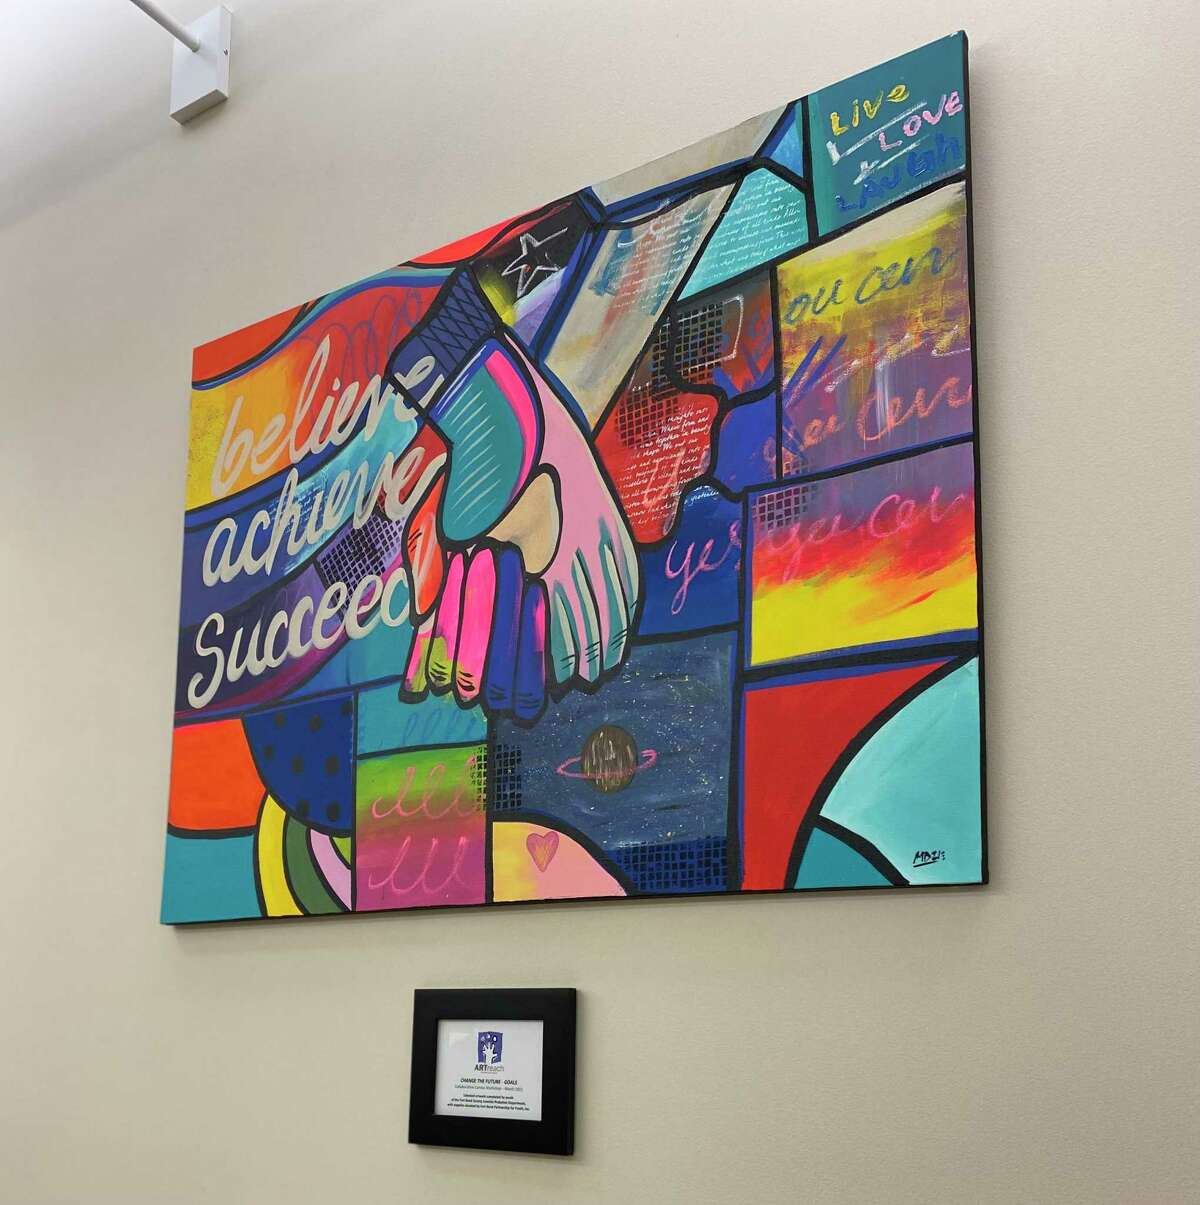 Fort Bend County and ARTreach have partnered to work with at-risk youths inside the Fort Bend County Detention Center. Shown here is one of the first works created by a juvenile inmate, unveiled during a ceremony on Wednesday, May 19, 2021.